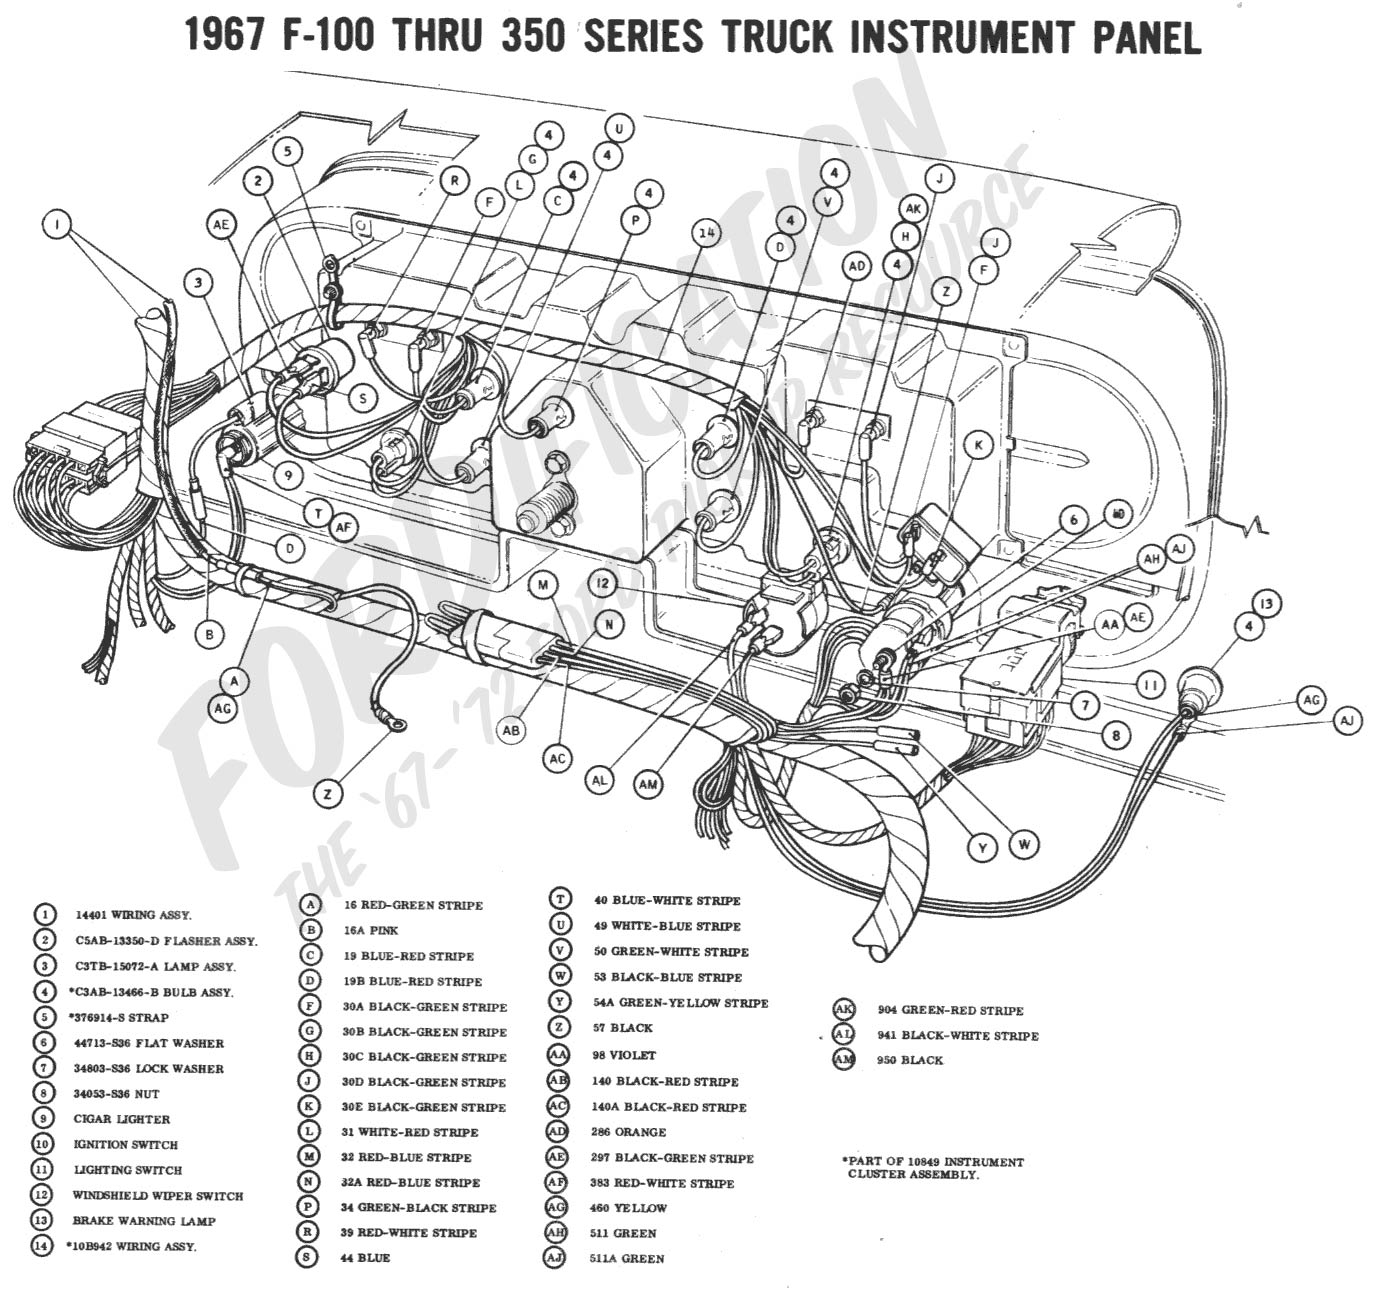 fuse box layout for vauxhall insignia with Wiring Diagram For 1971 Camaro on Ac Heating Element Diagram also Where Is Fuse Box On A Vauxhall 1999 furthermore Wiring Diagram For 1971 Camaro additionally